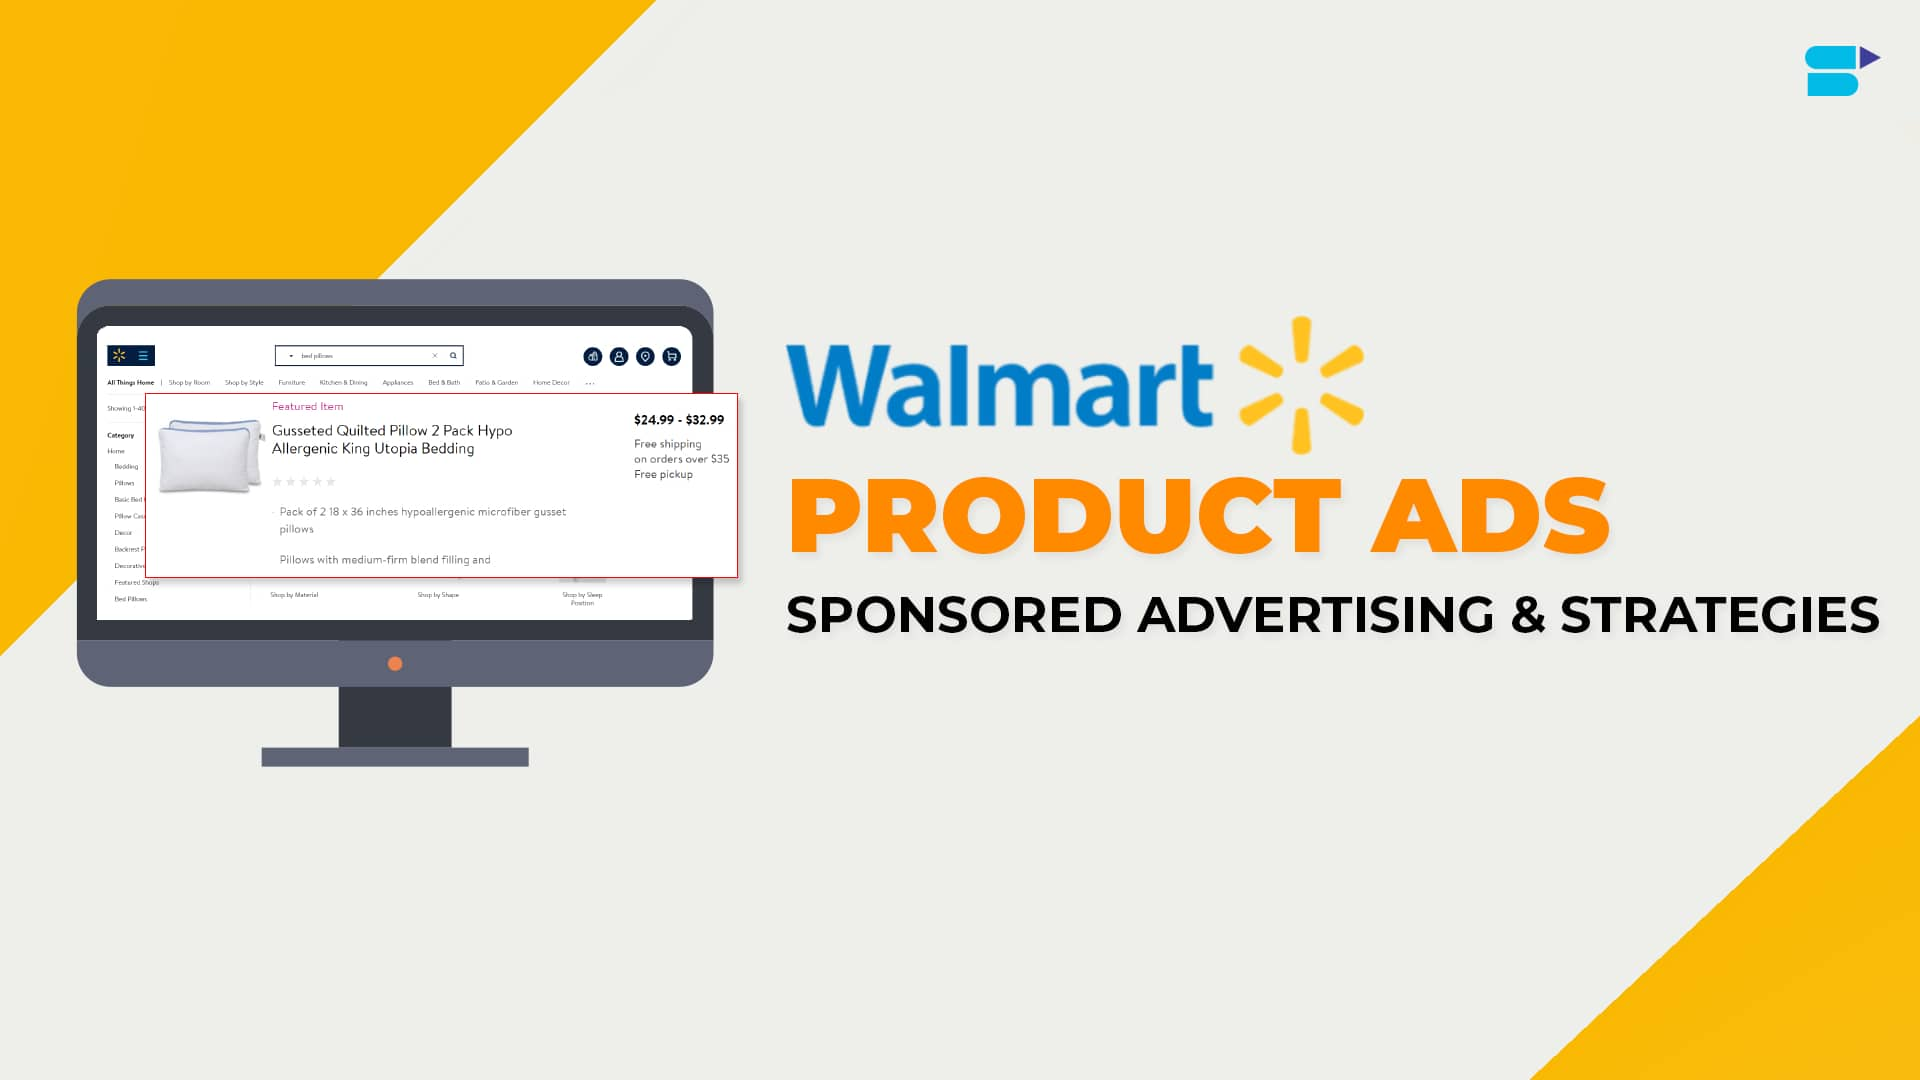 walmart product ads guide